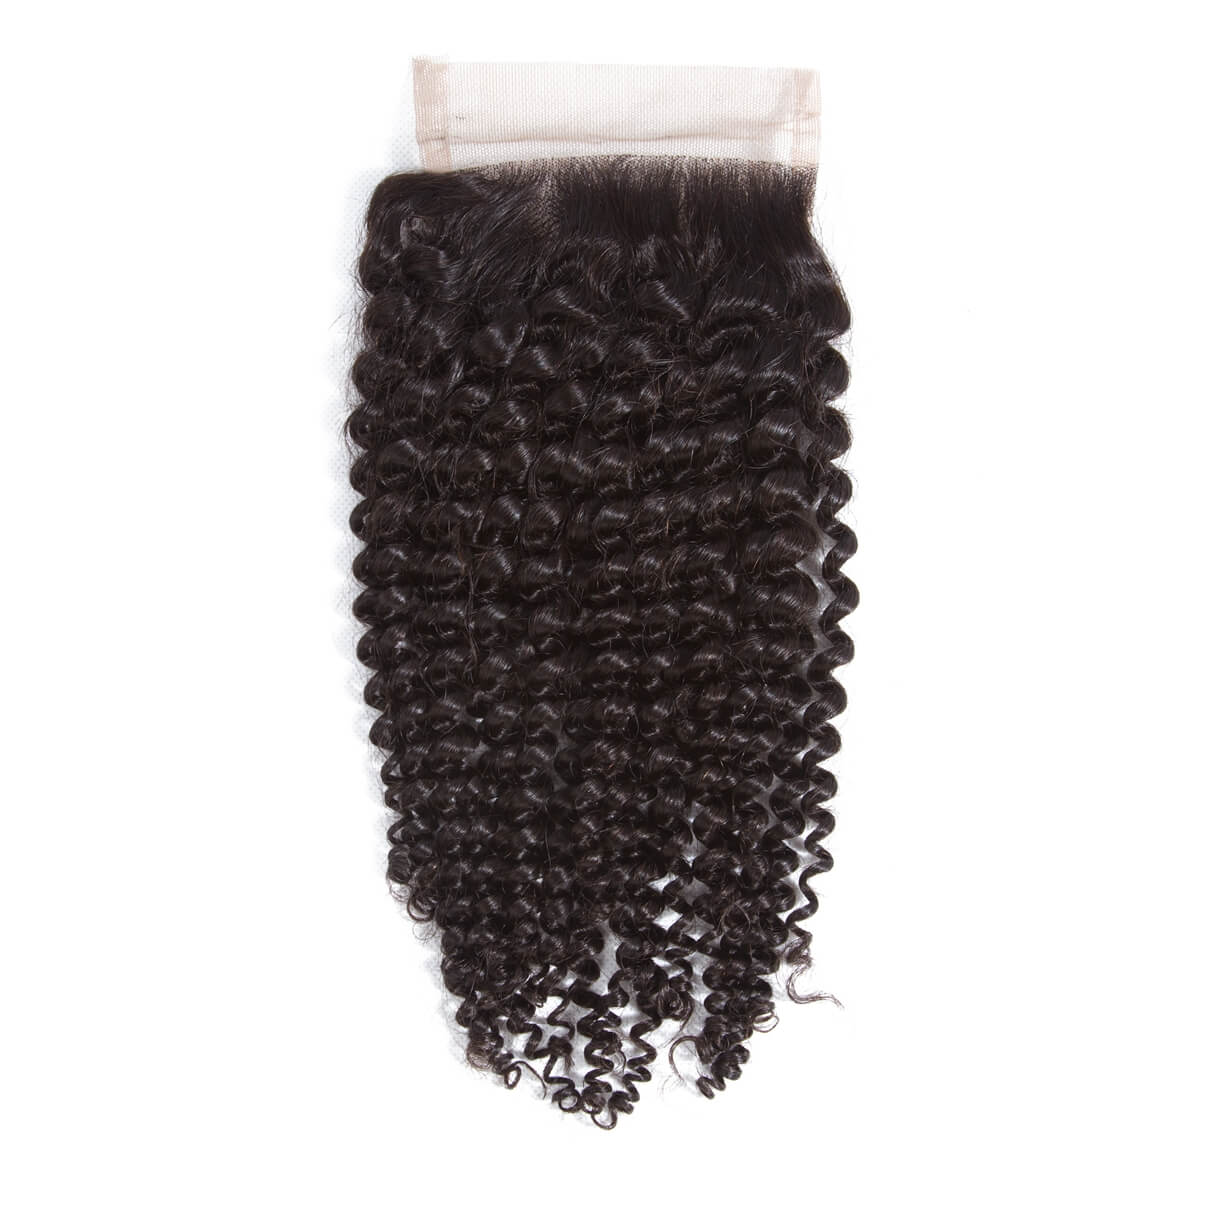 Lakihair 8A Brazilian Human Hair 4 Bundles Kinky Curly Hair Bundles With Lace Closure 4x4